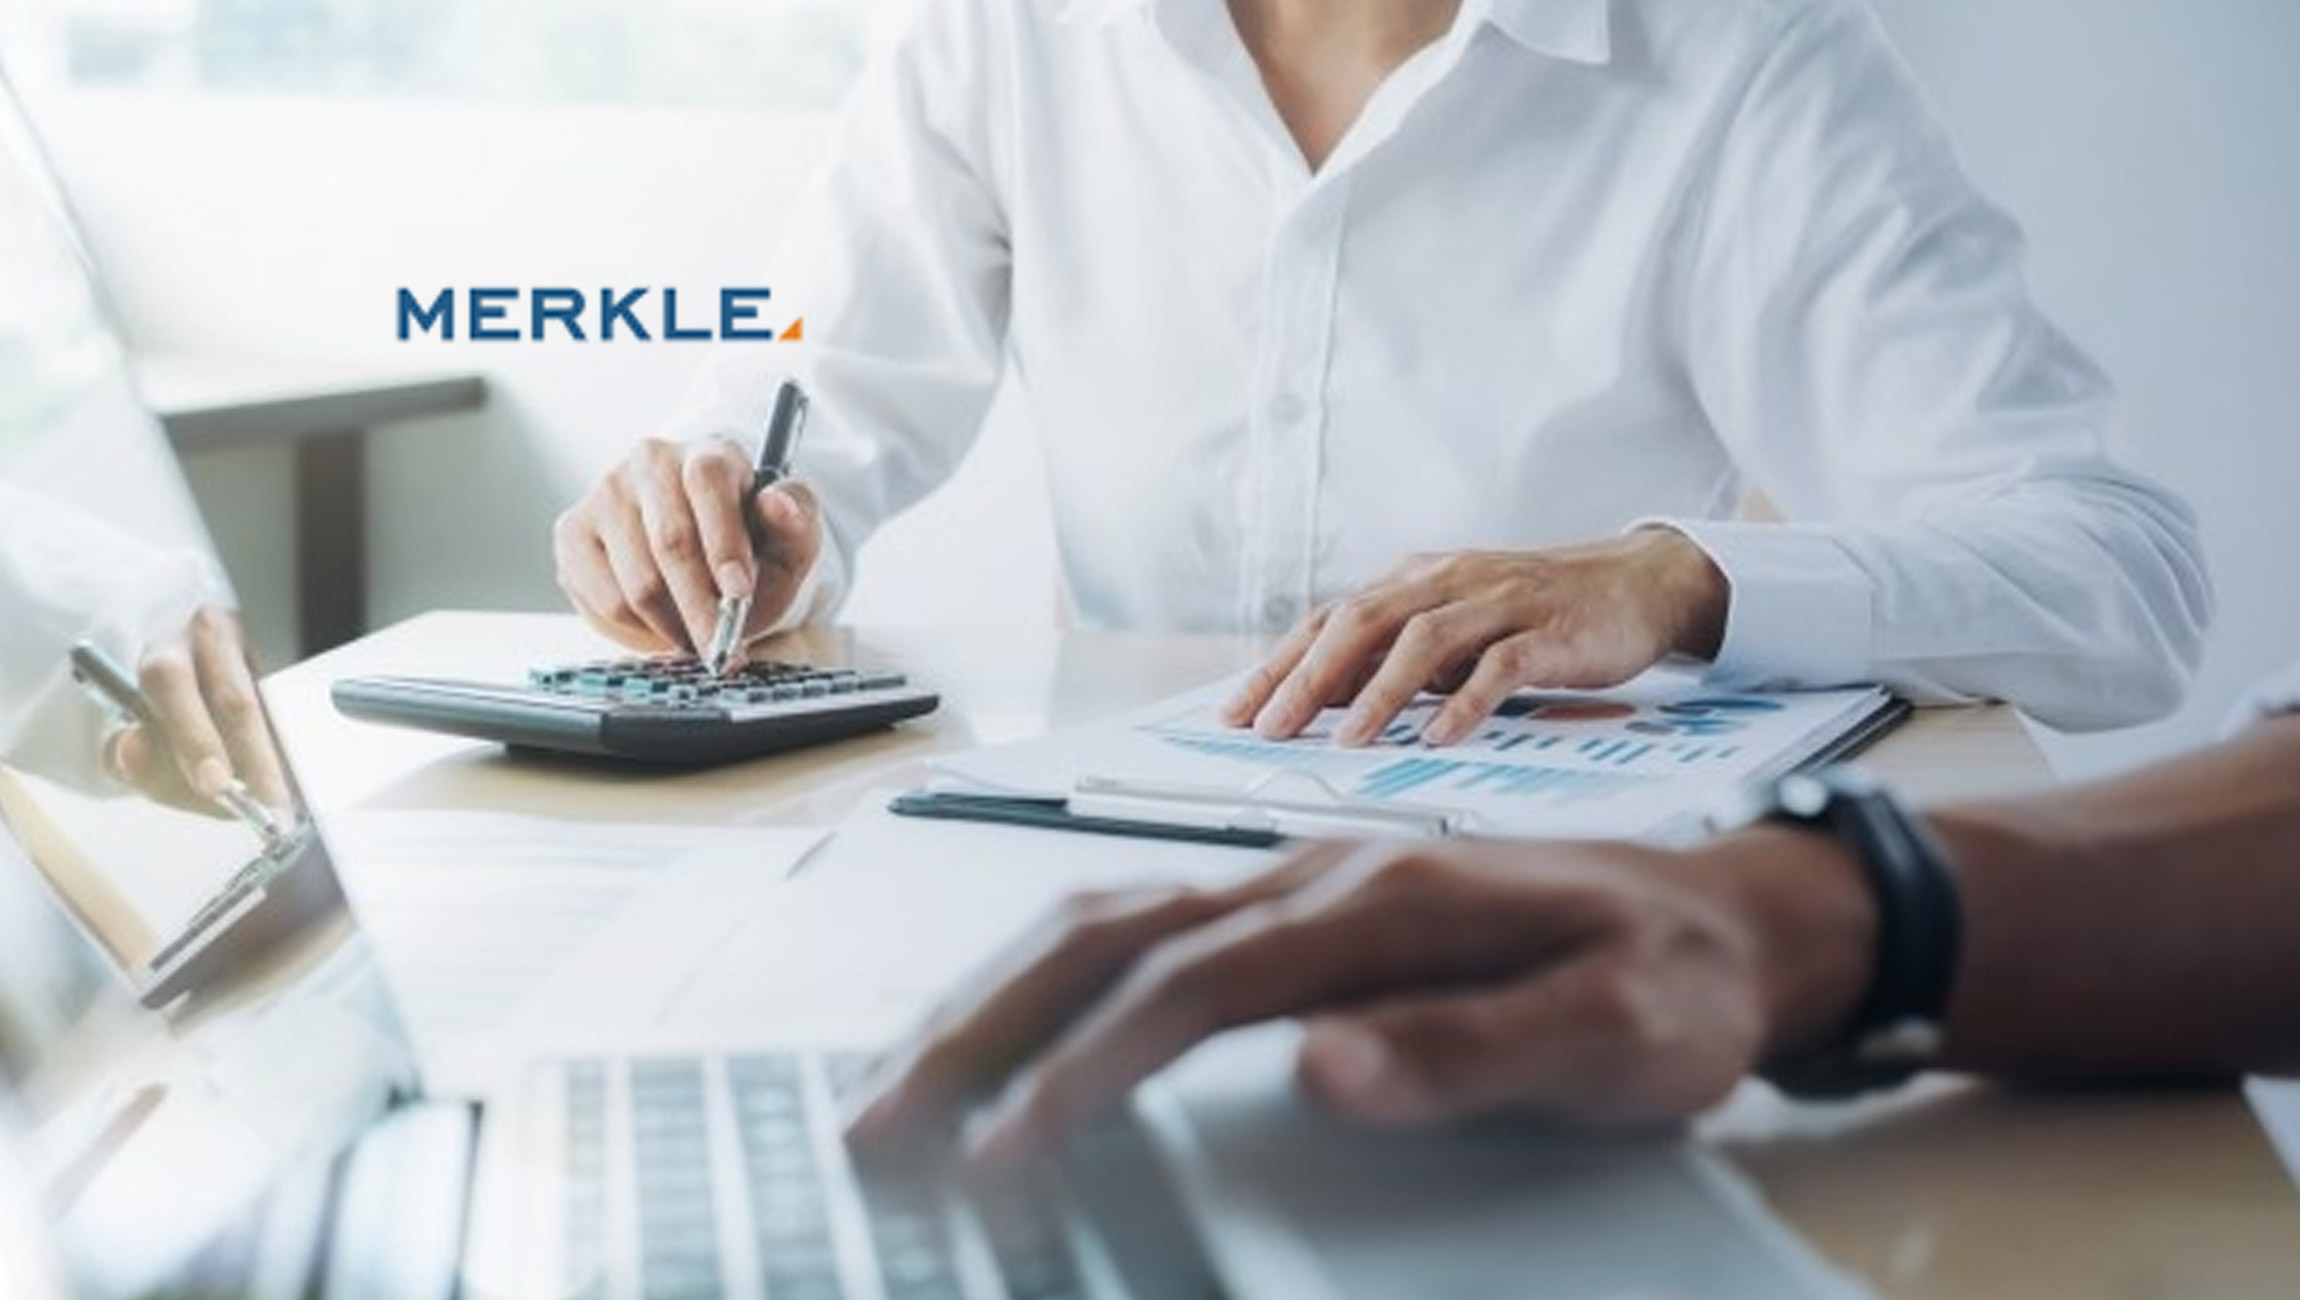 Merkle, dentsu's Flagship CXM Brand, Appoints Pete Stein as Global Lead for Experience & Commerce